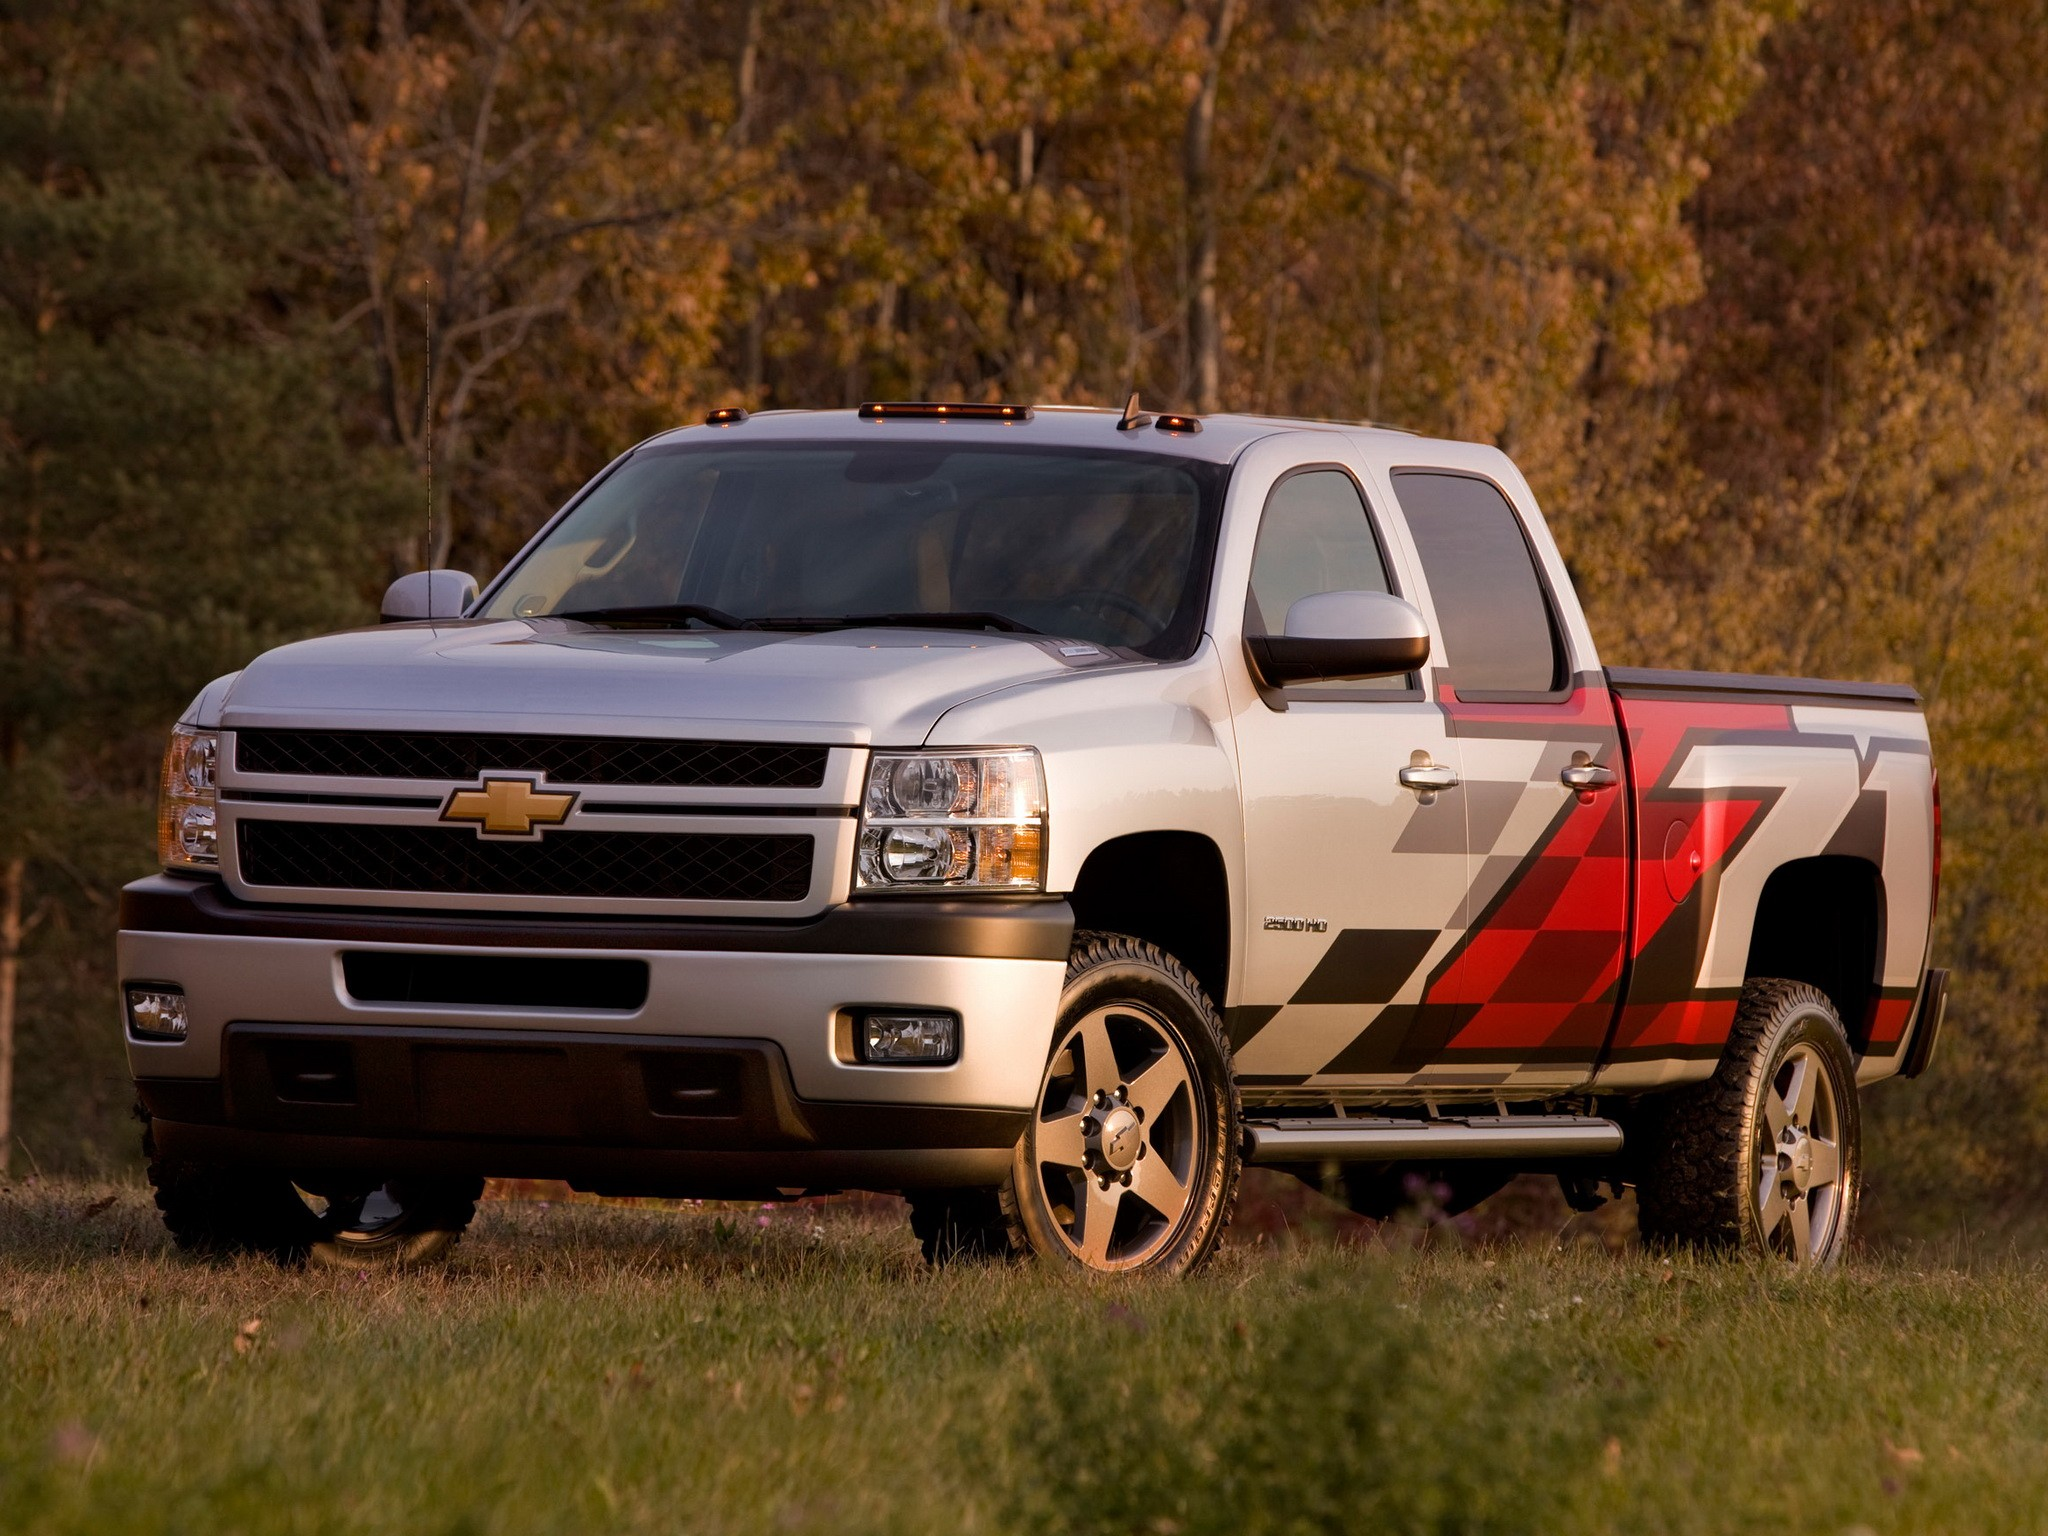 Chevrolet Silverado Bed Sizes